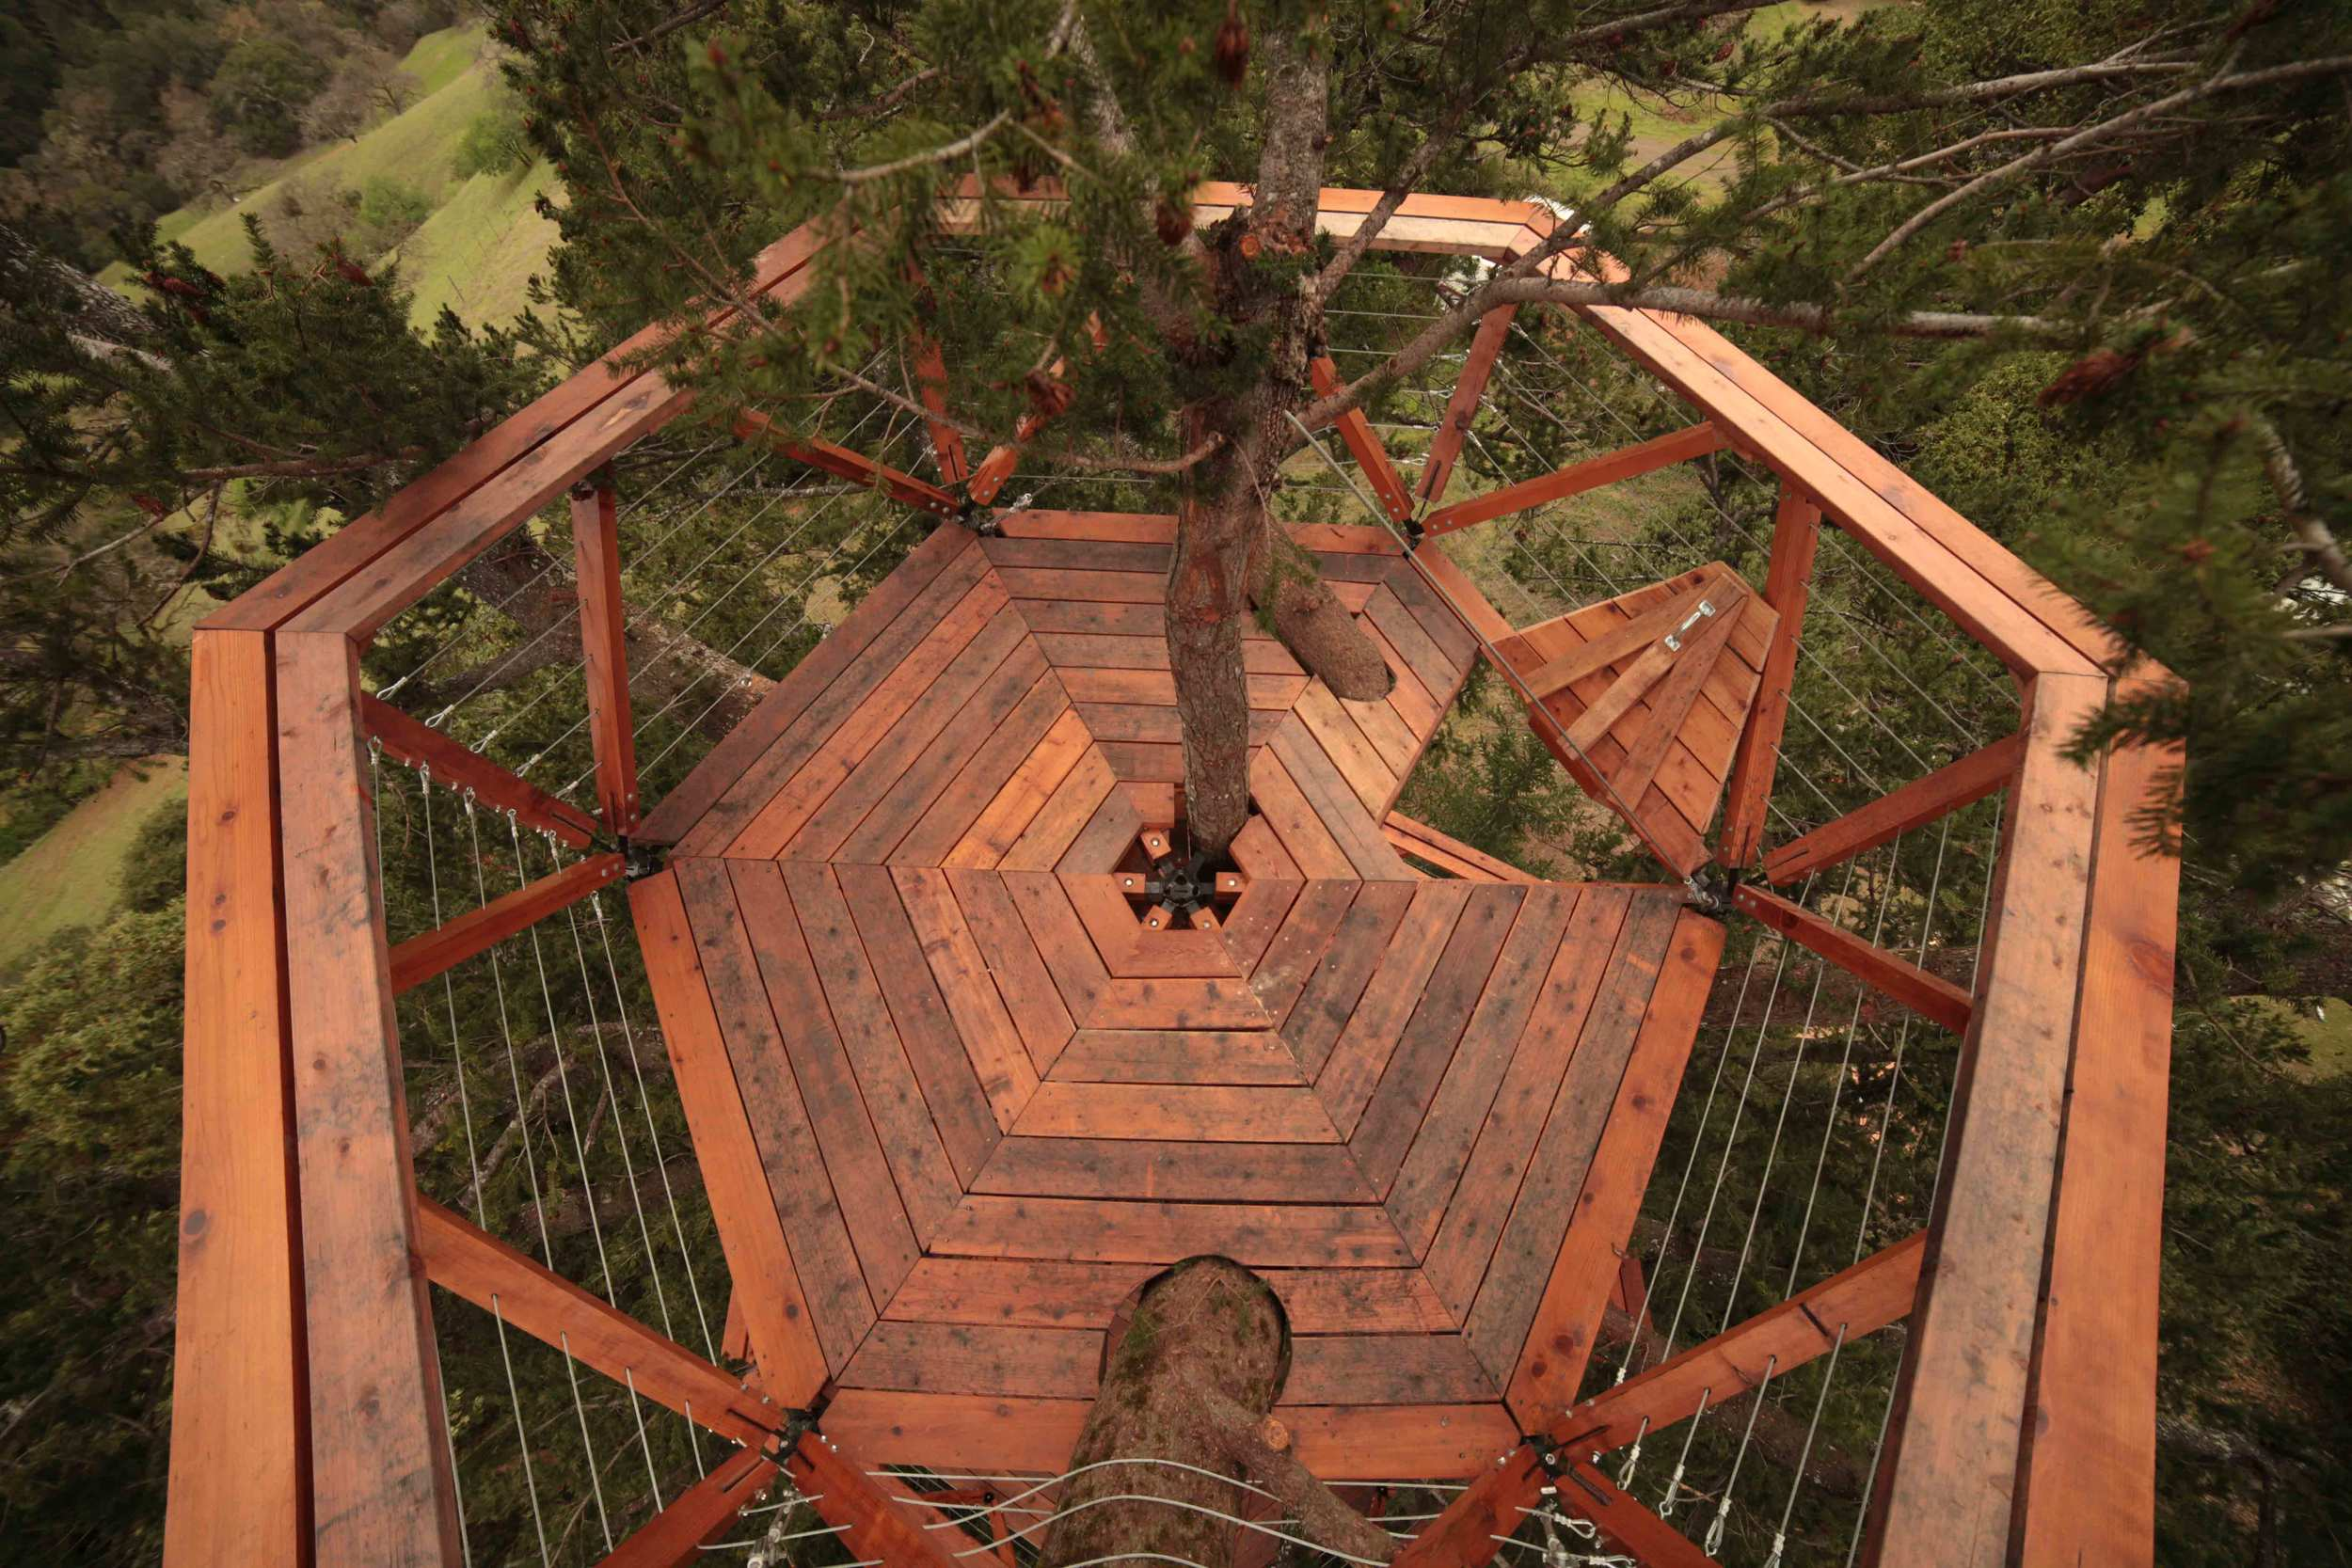 o2treehouse_geyserville_image_173-Small.jpg